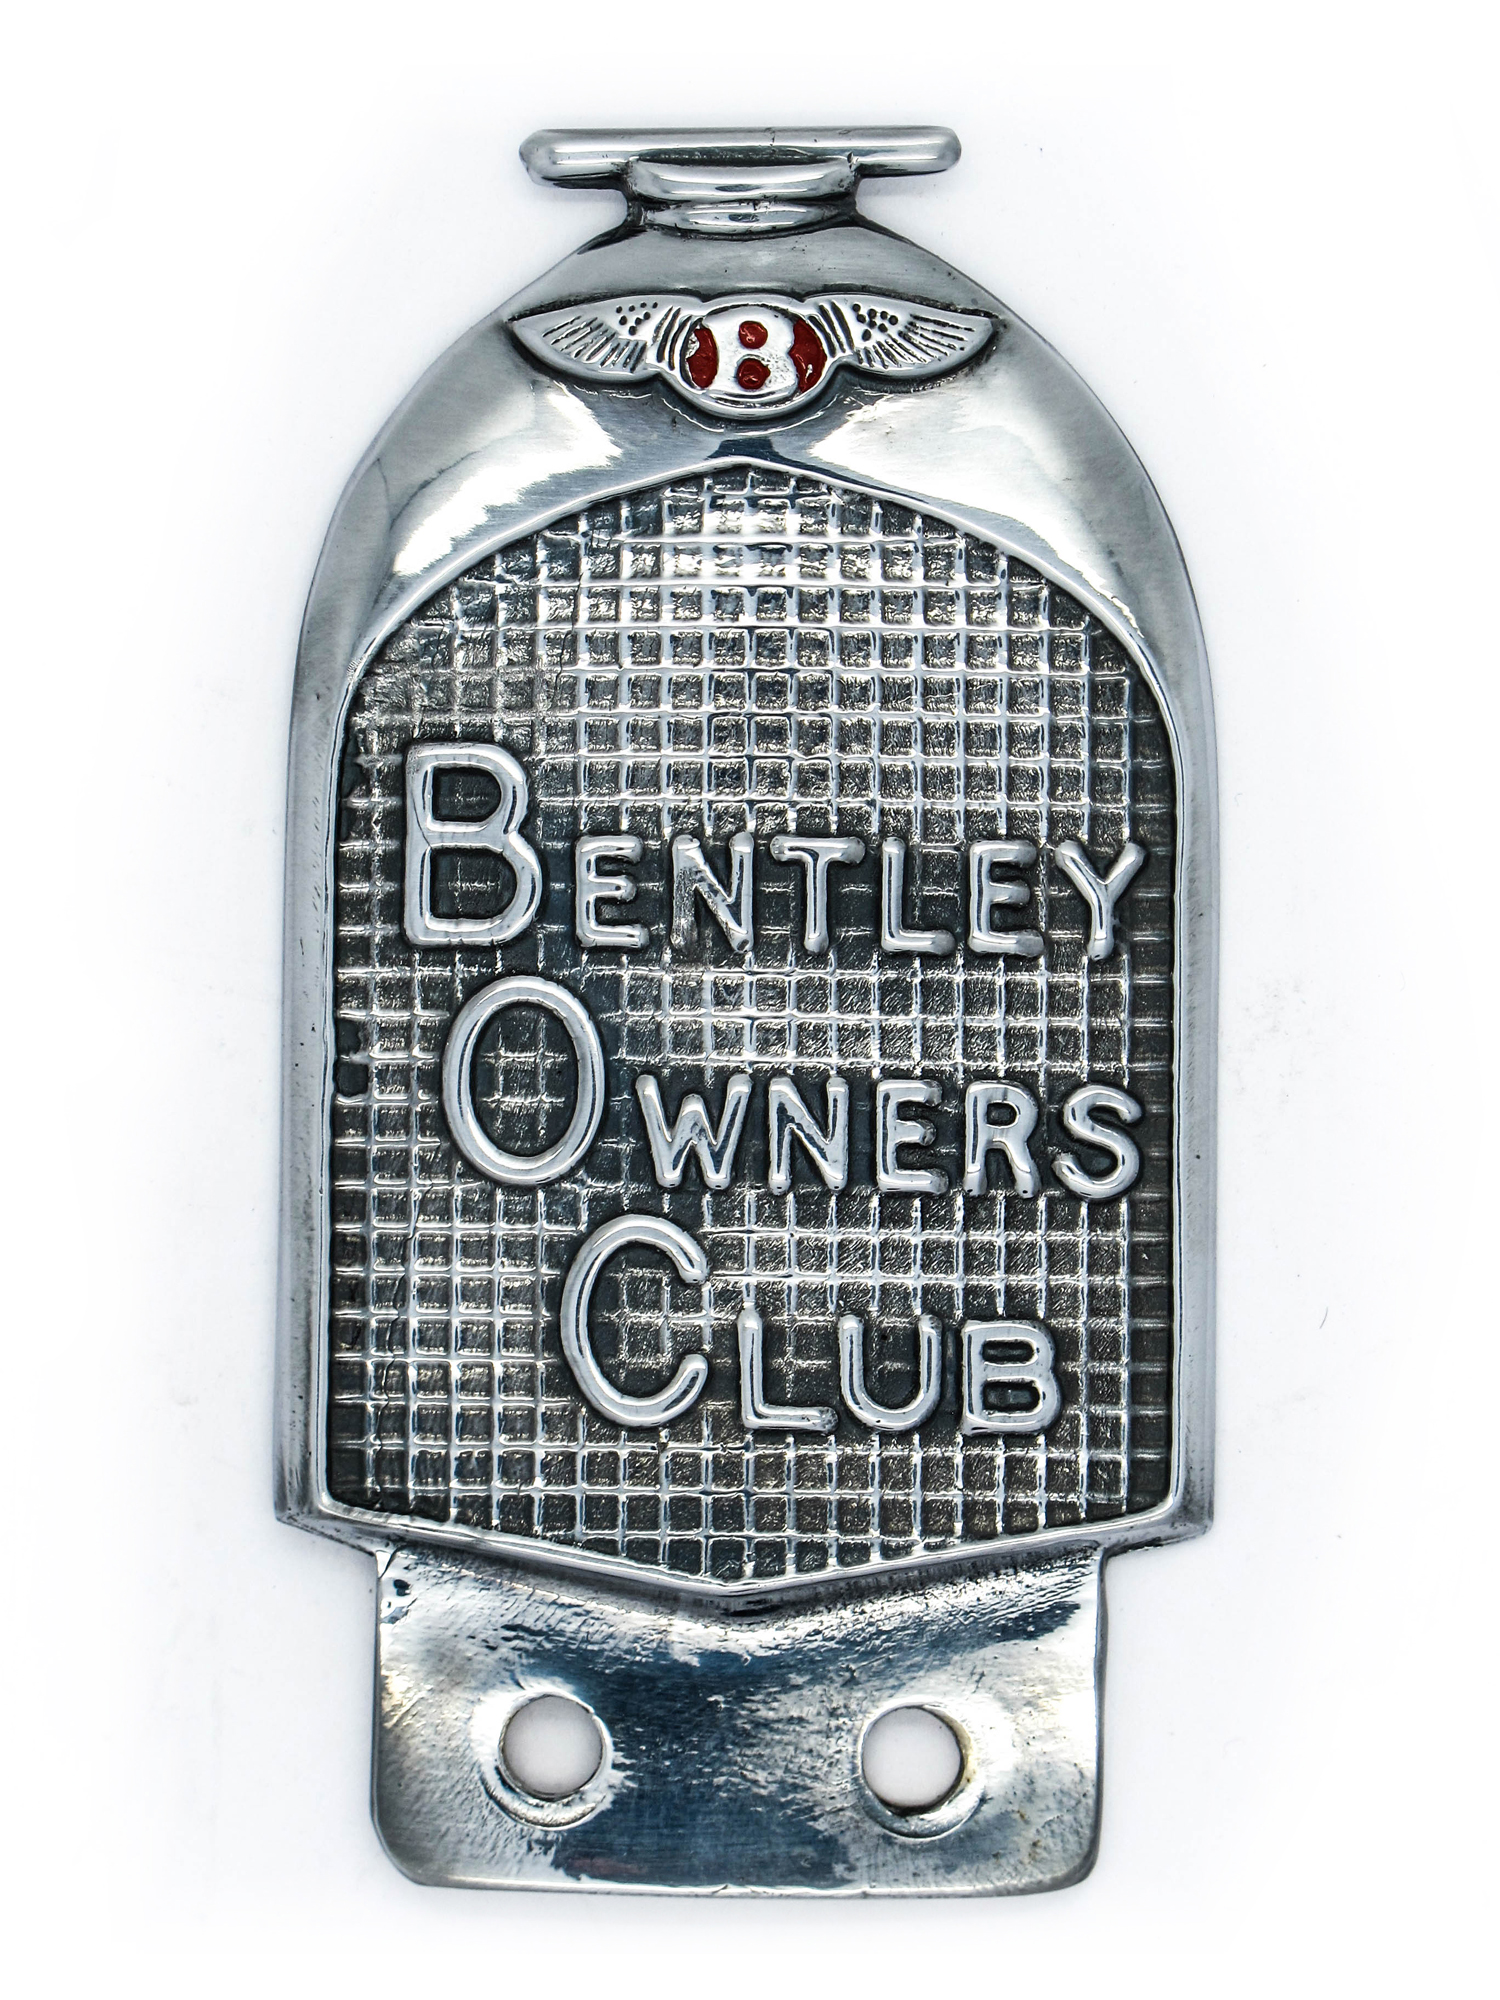 "Lot 21A - A 1930's Red Label Bentley Owner's Club Chrome Bumper Badge, plated bronze, circa 4.5"" x 2.5""."